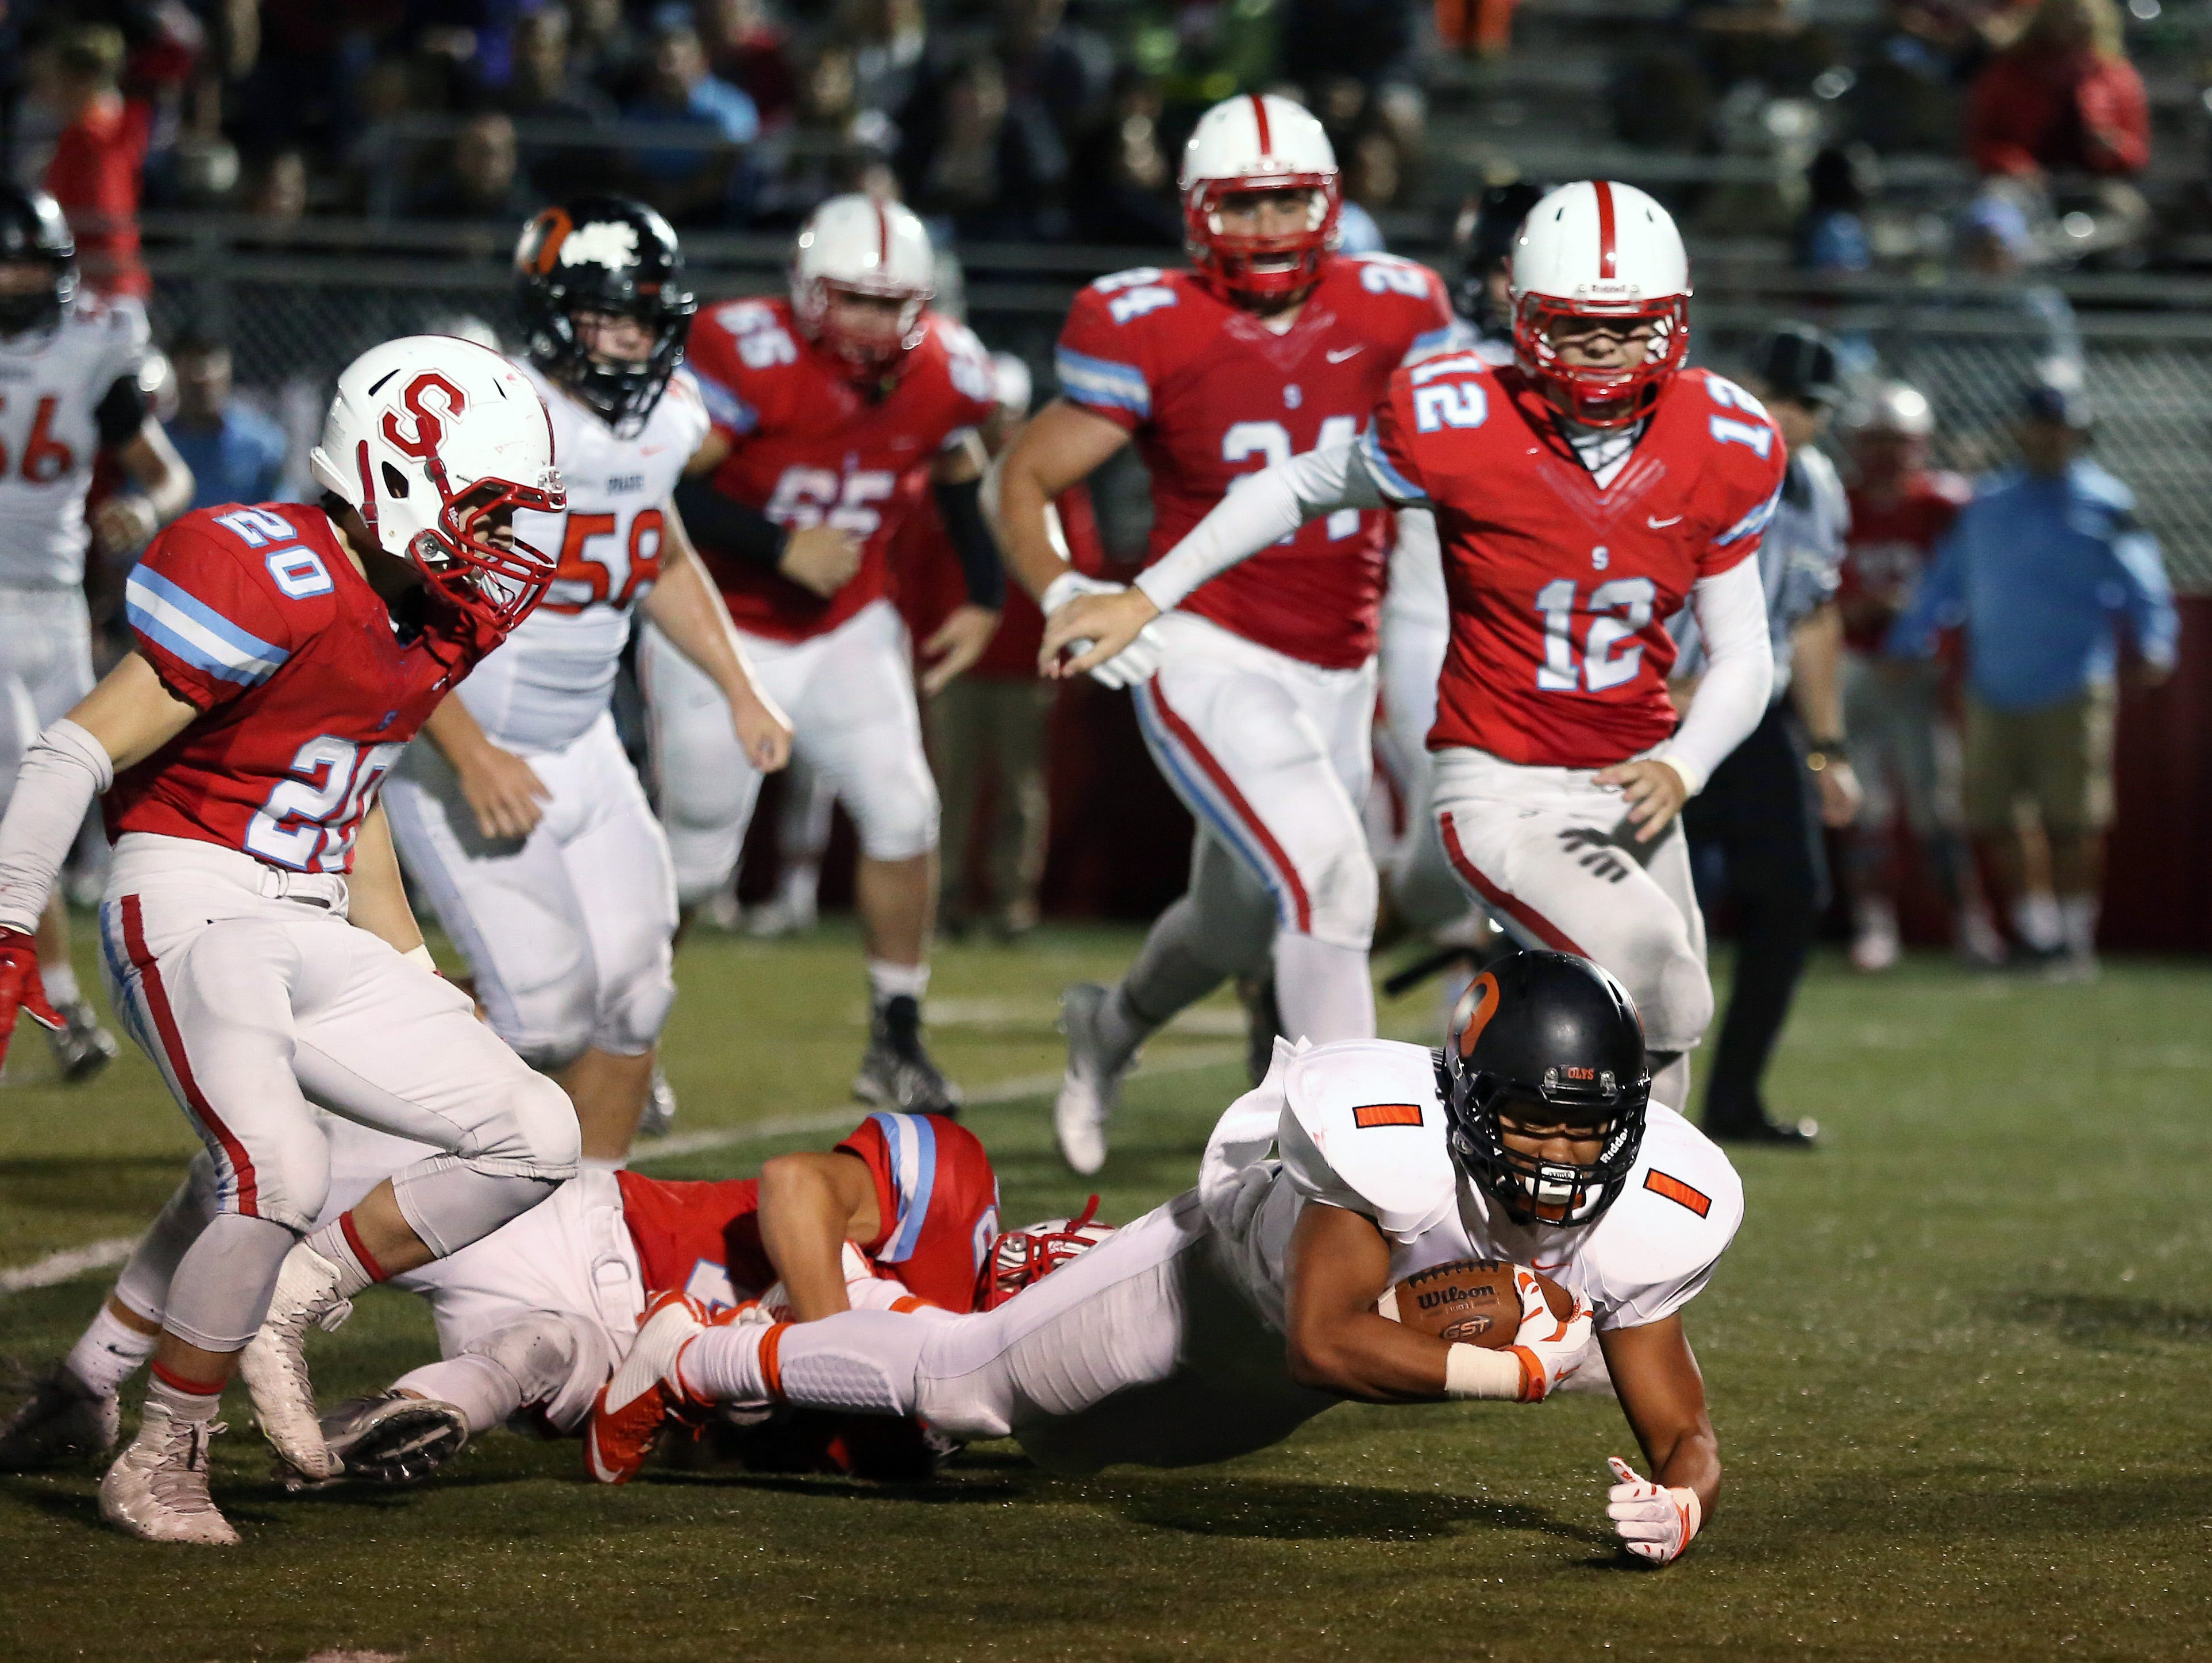 Sprague's Noah Mellen runs the ball as the Olys defeat South Salem 48-7 in a Greater Valley Conference game on Friday, Sept. 2, 2016, at South Salem.